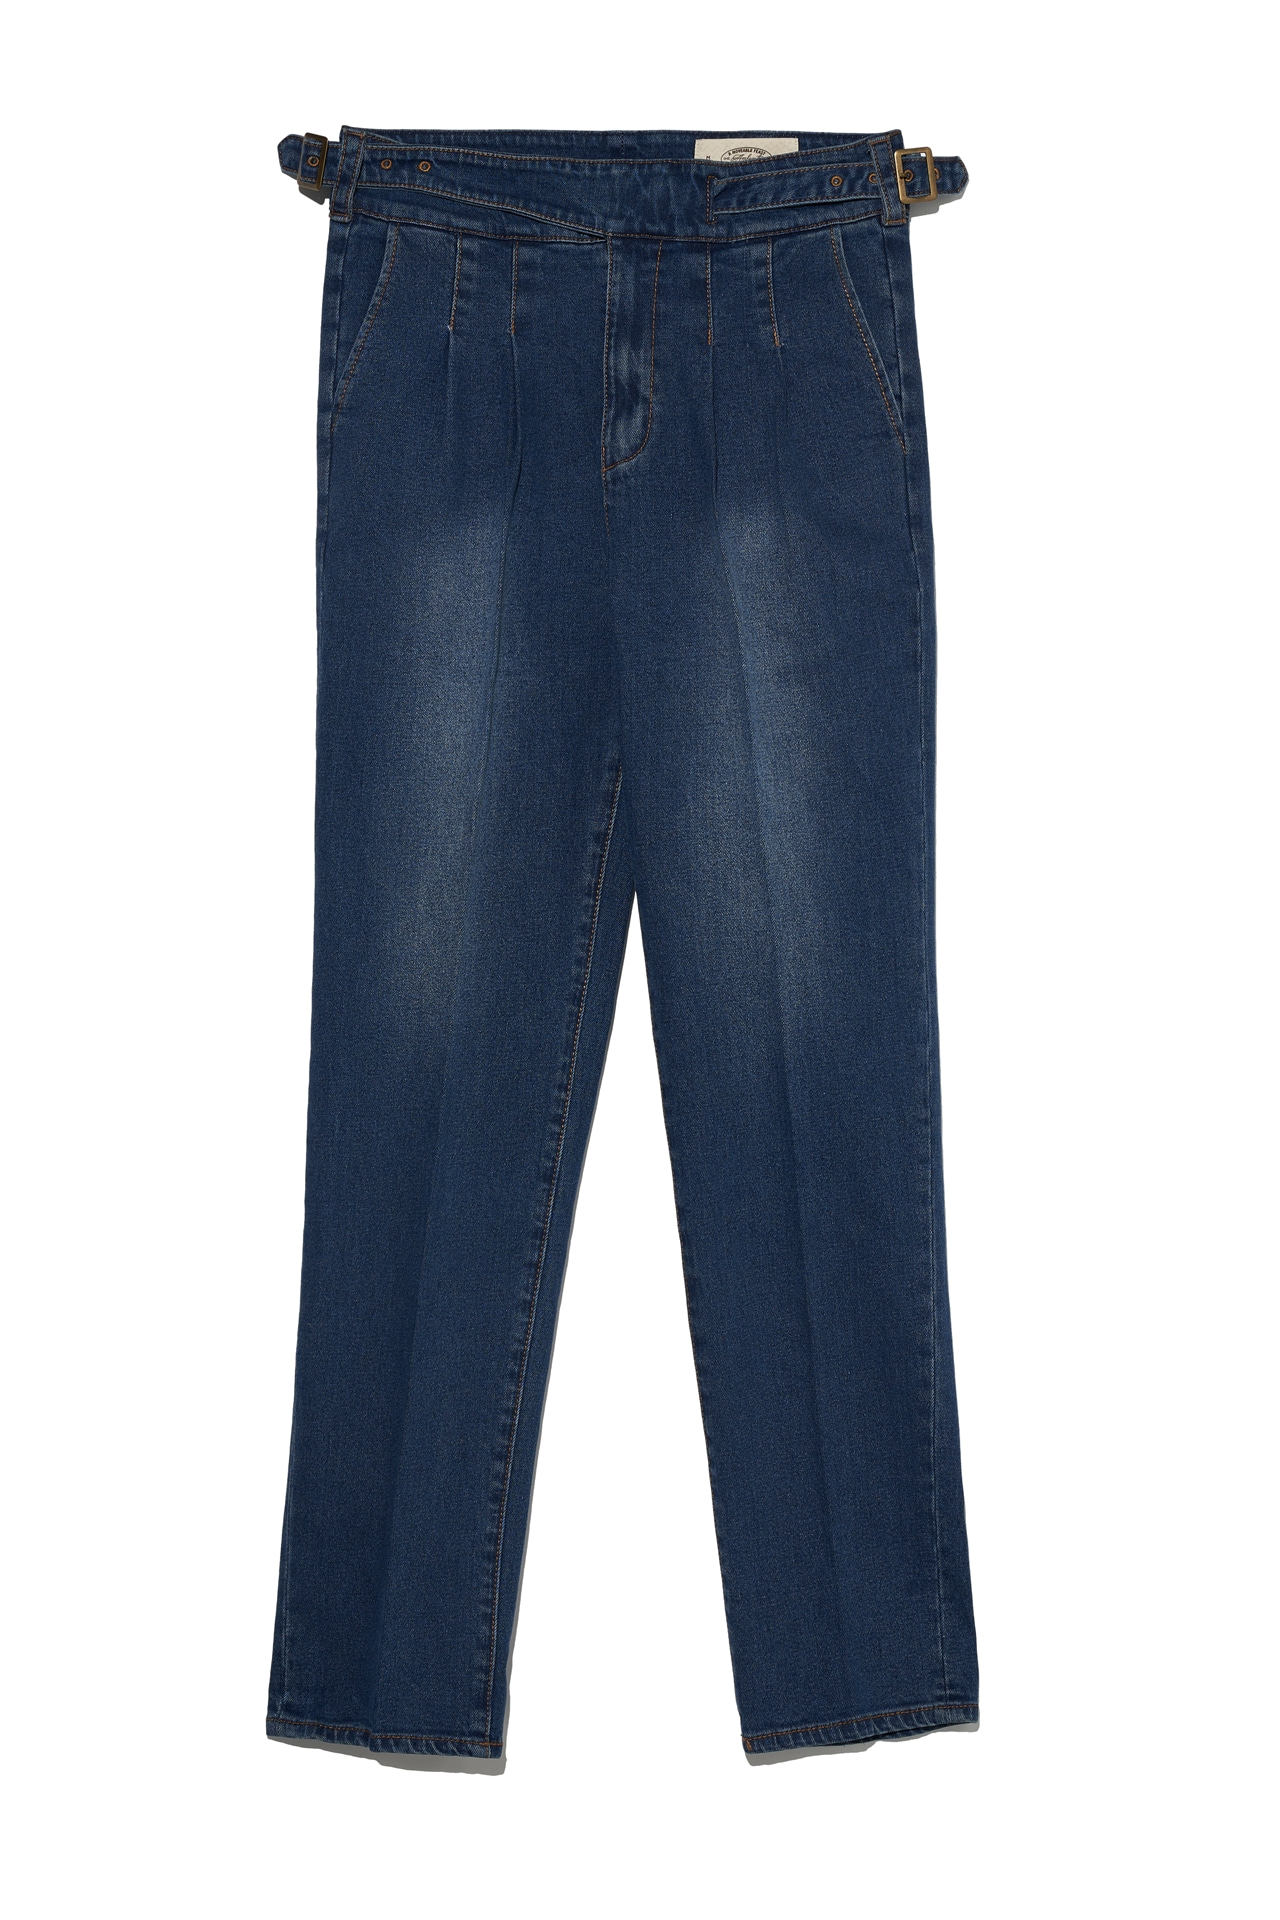 MID BLUE DENIM 003 ( GURKHA TYPE)Amfeast(암피스트)